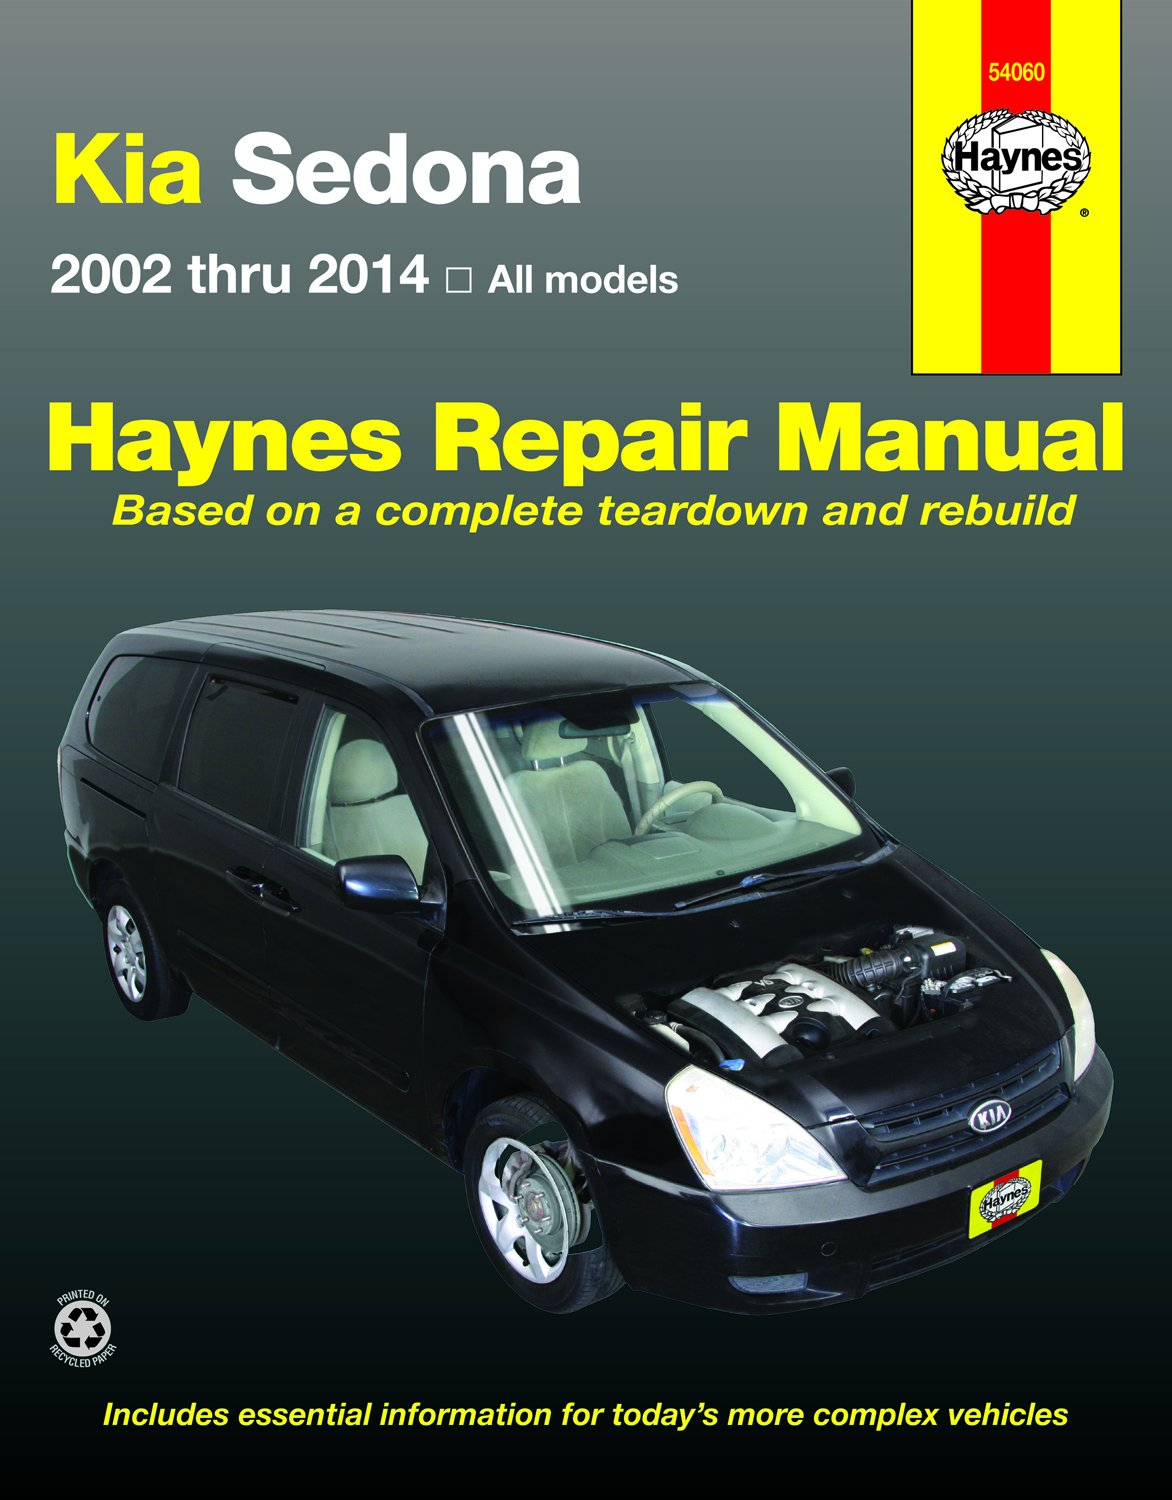 Kia Sedona Repair Manual: 2002-14 (Haynes Automotive): Amazon.co.uk: Haynes  Publishing: 9781620921494: Books